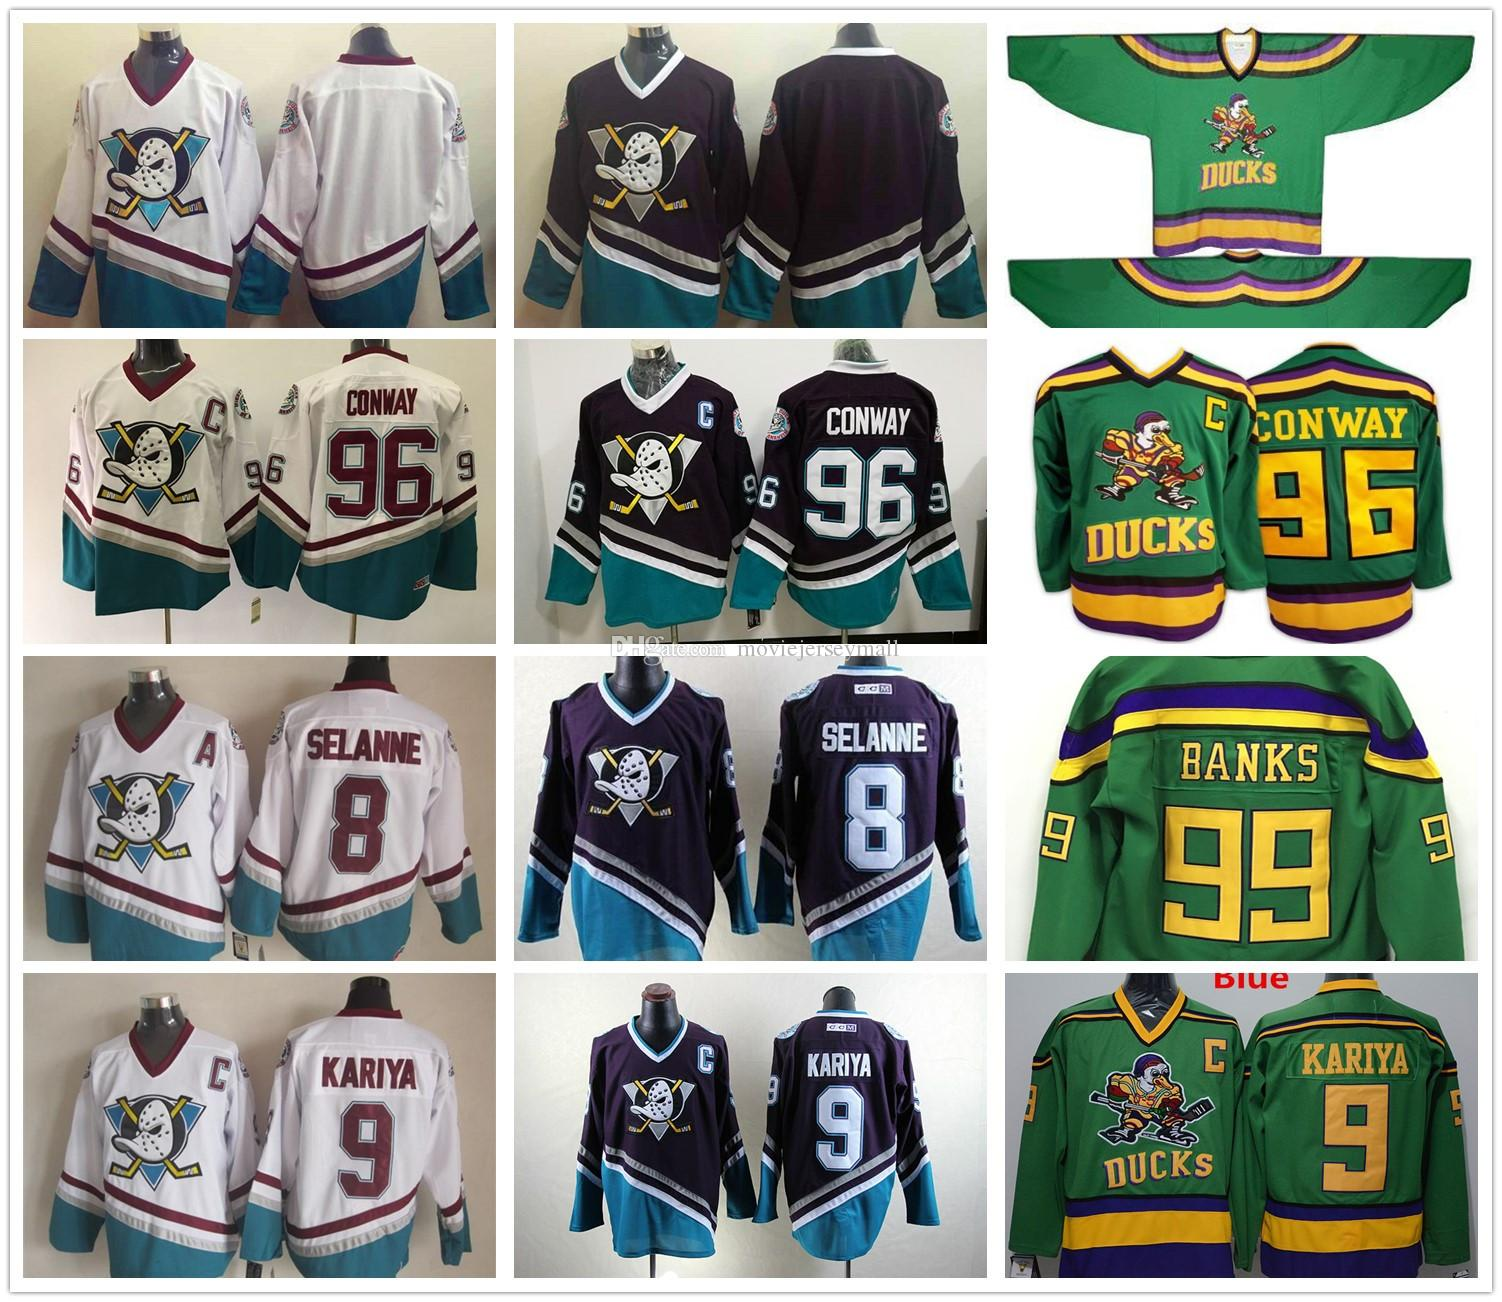 Charlie Conway Jersey Mighty Ducks Movie Jerseys 9 Paul Kariya 8 Teemu  Selanne Mens Green White Purple Hockey Jersey Stitched Sewn UK 2019 From ... 4f0ecf0b9